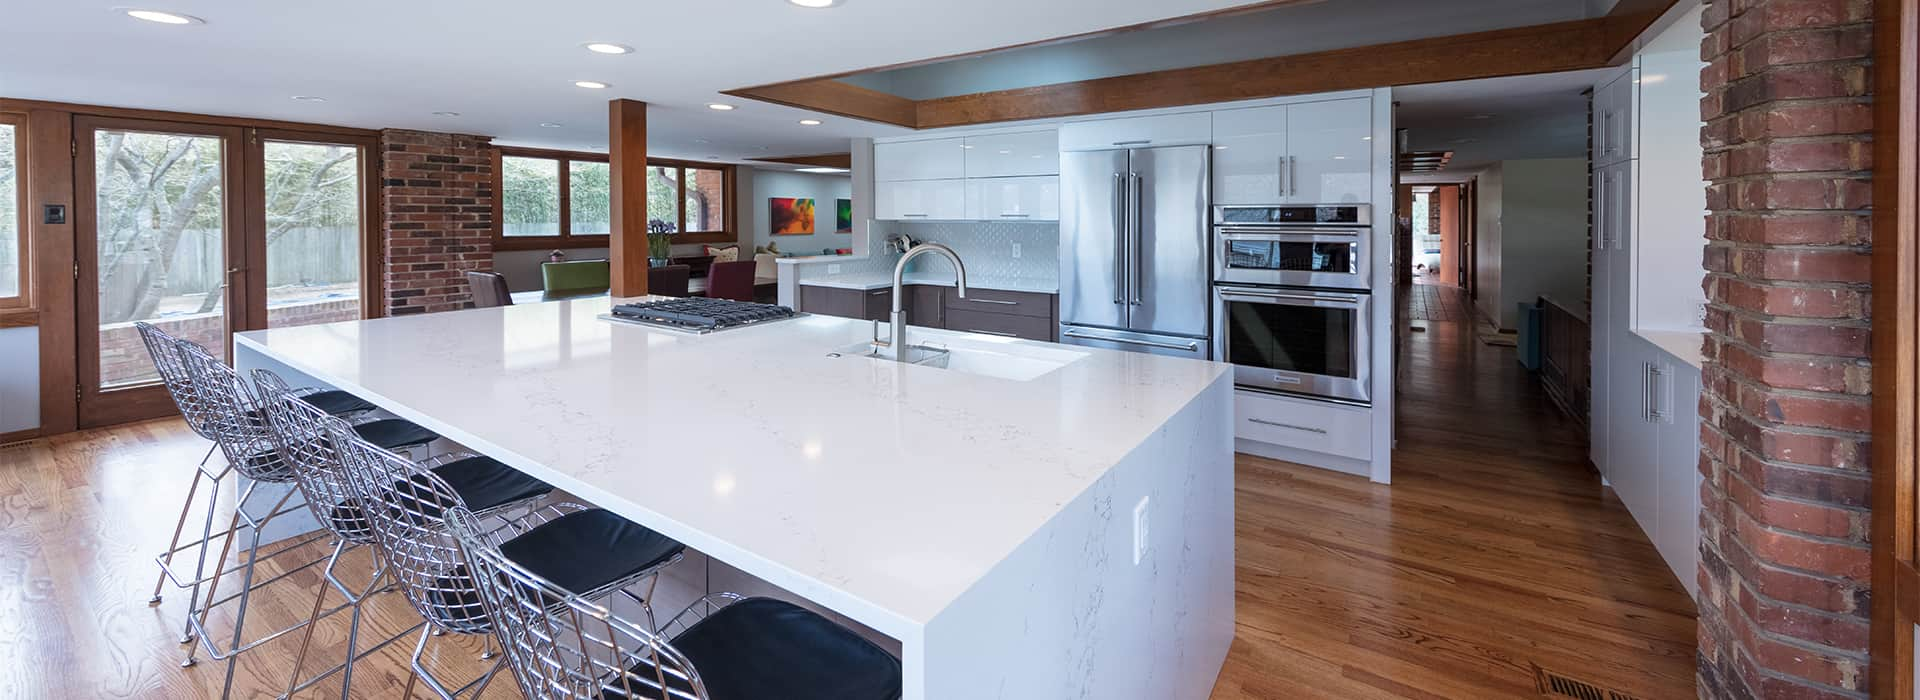 Kitchen Renovation Modern Kitchen Renovation Remodeling Kitchen Remodeling Services